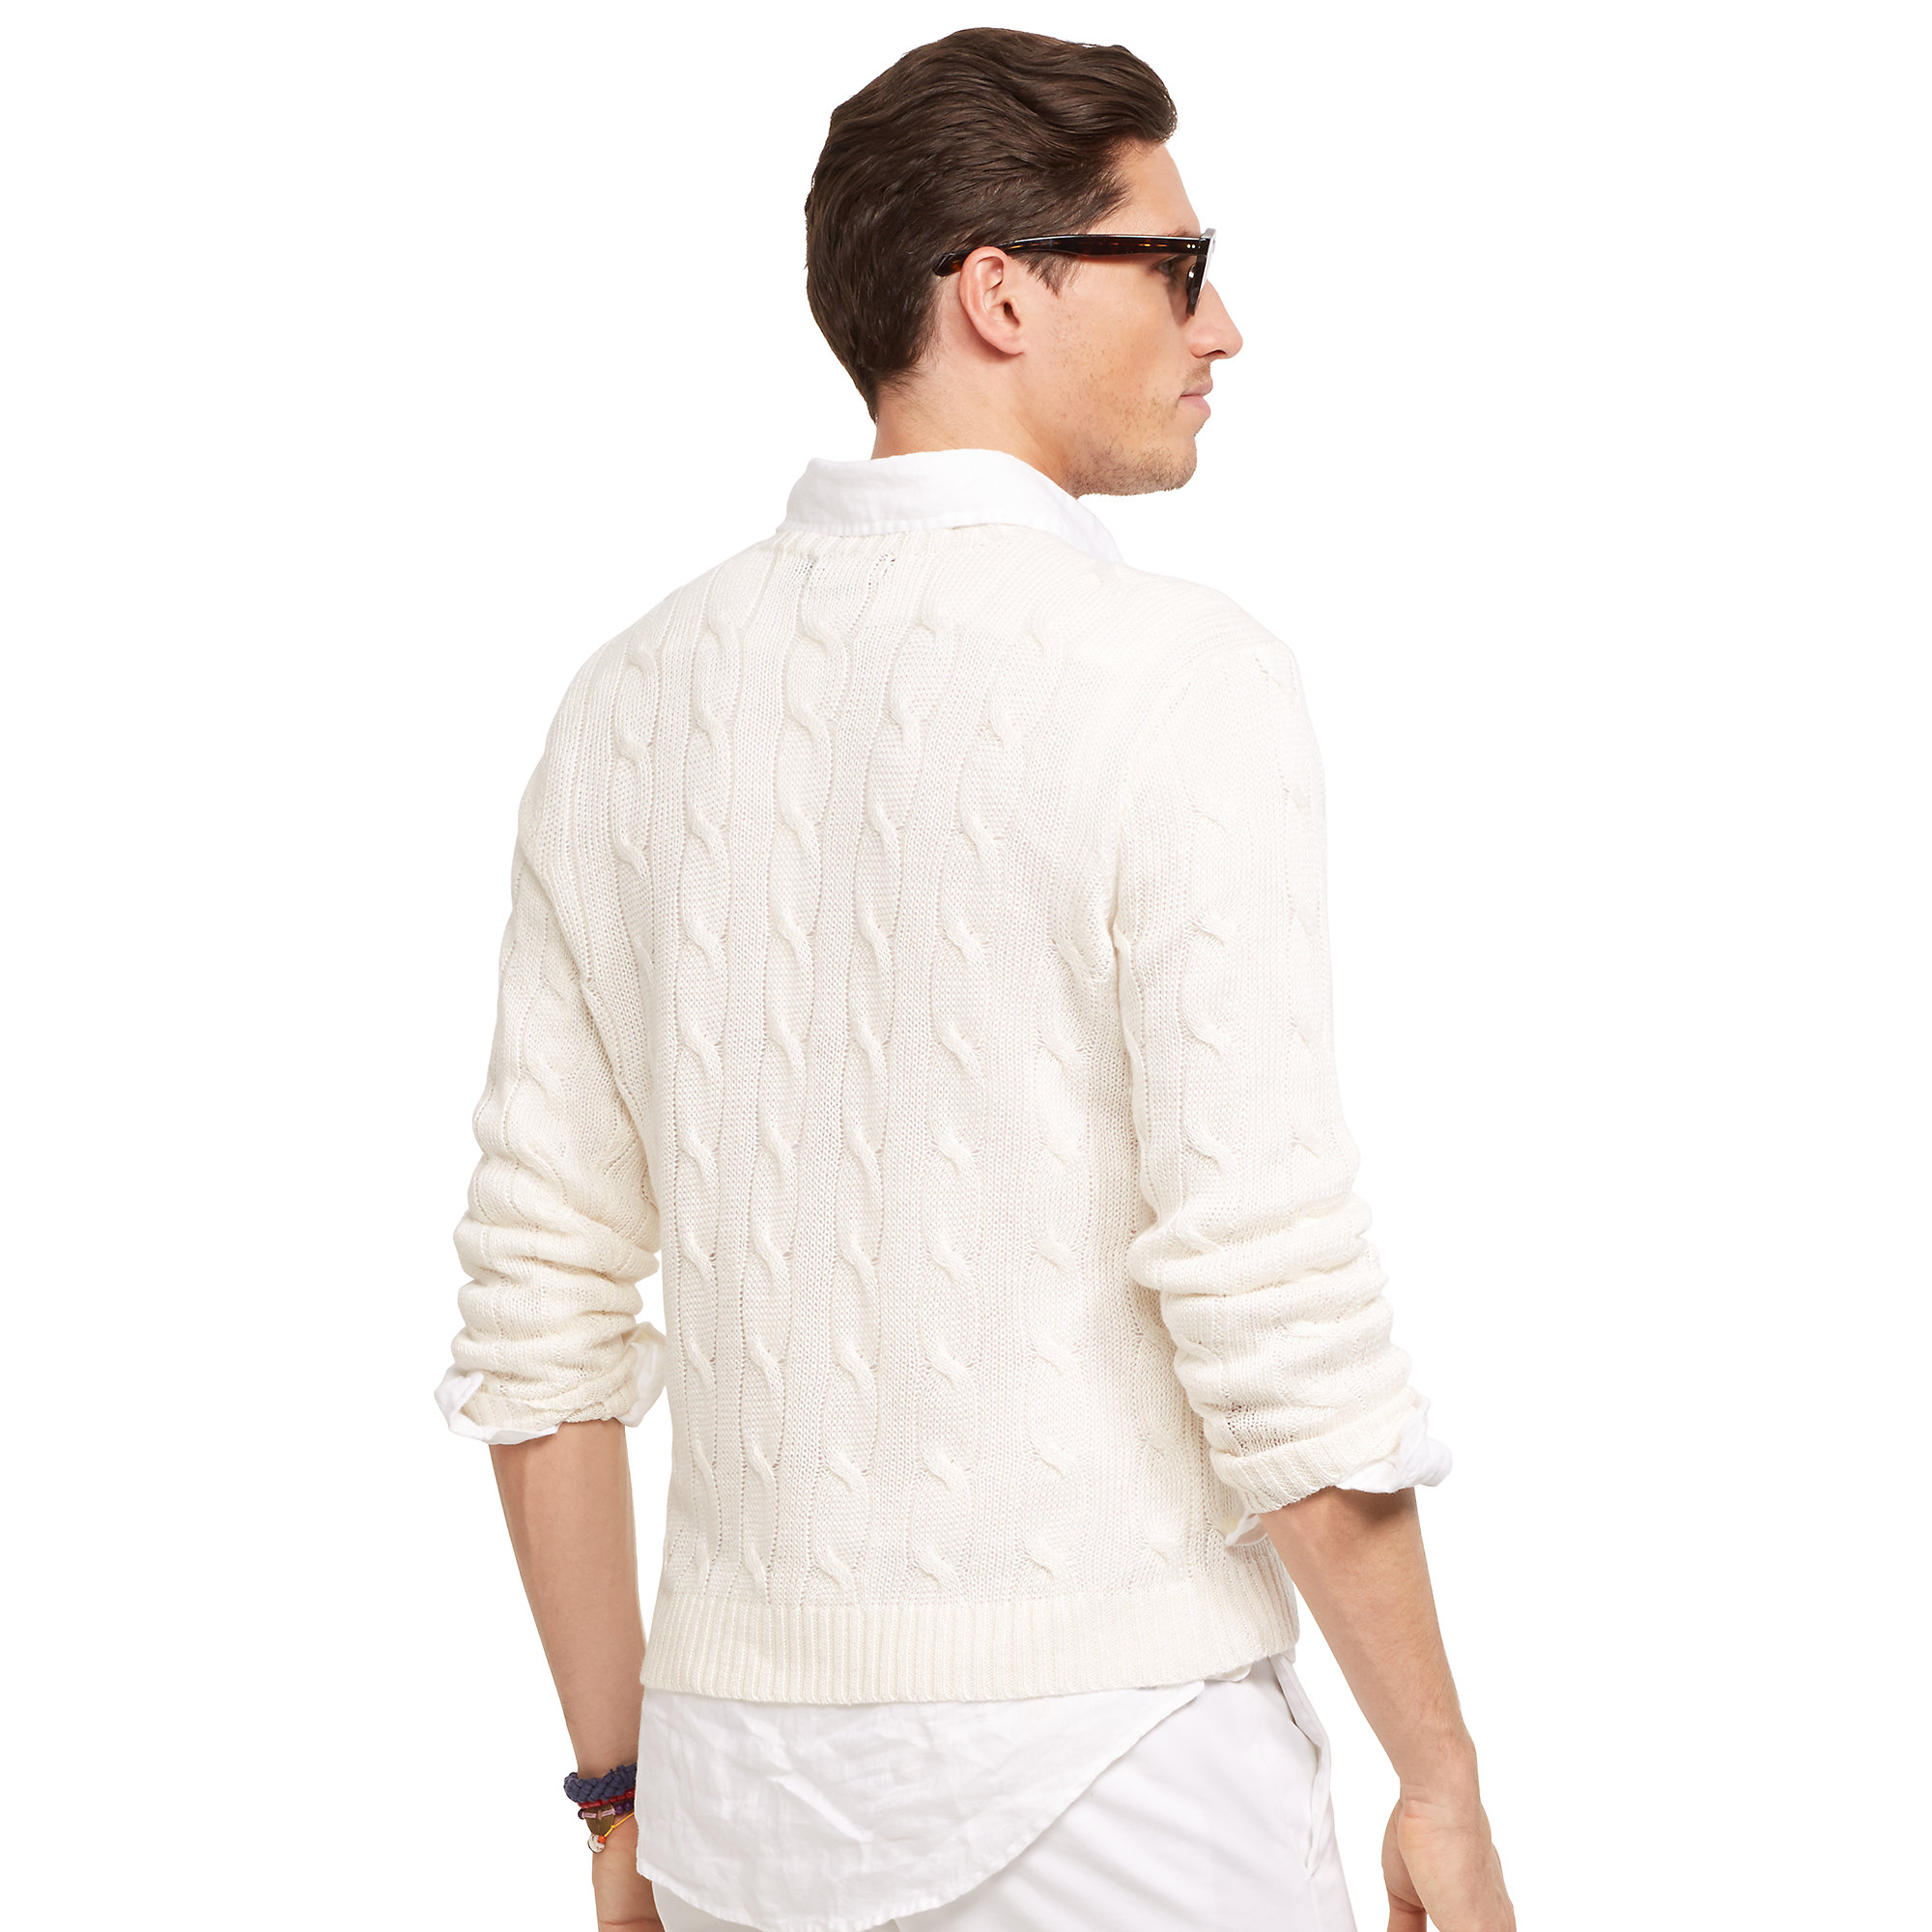 Lyst Polo Ralph Lauren Cable Knit Linen Sweater In White For Men